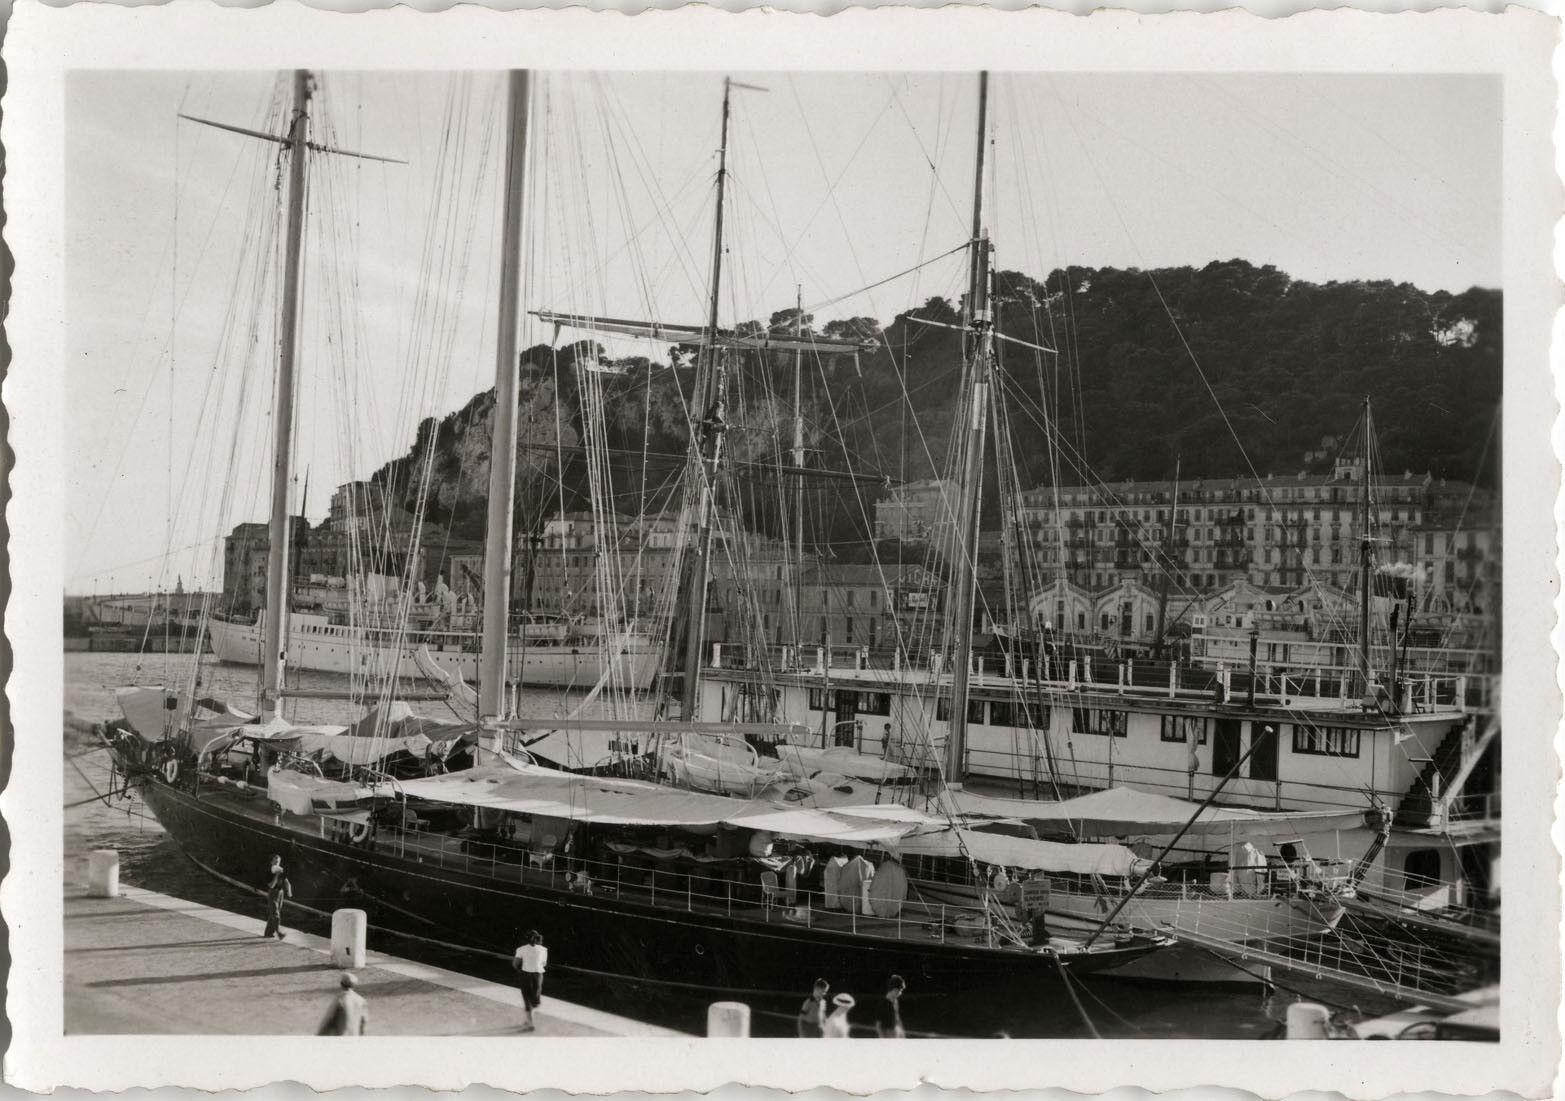 Photo ancienne - vintage snapshot - bateau yacht voilier nice - boat